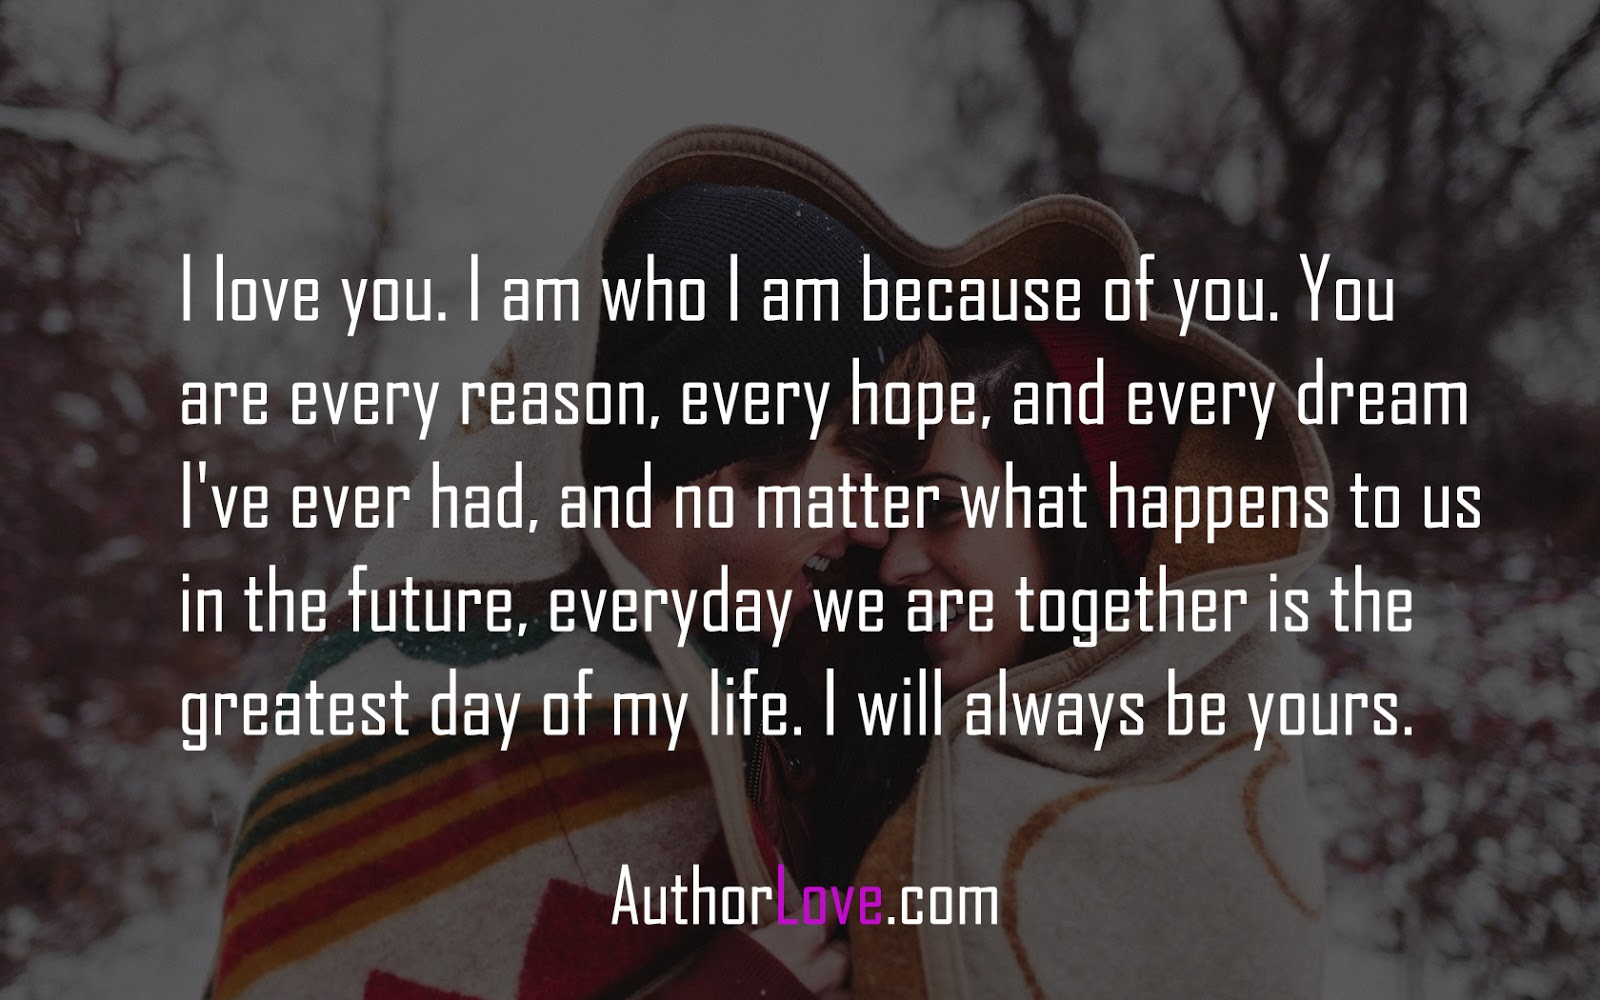 I Love You I Am Who I Am Because Of You Love Quotes Author Love